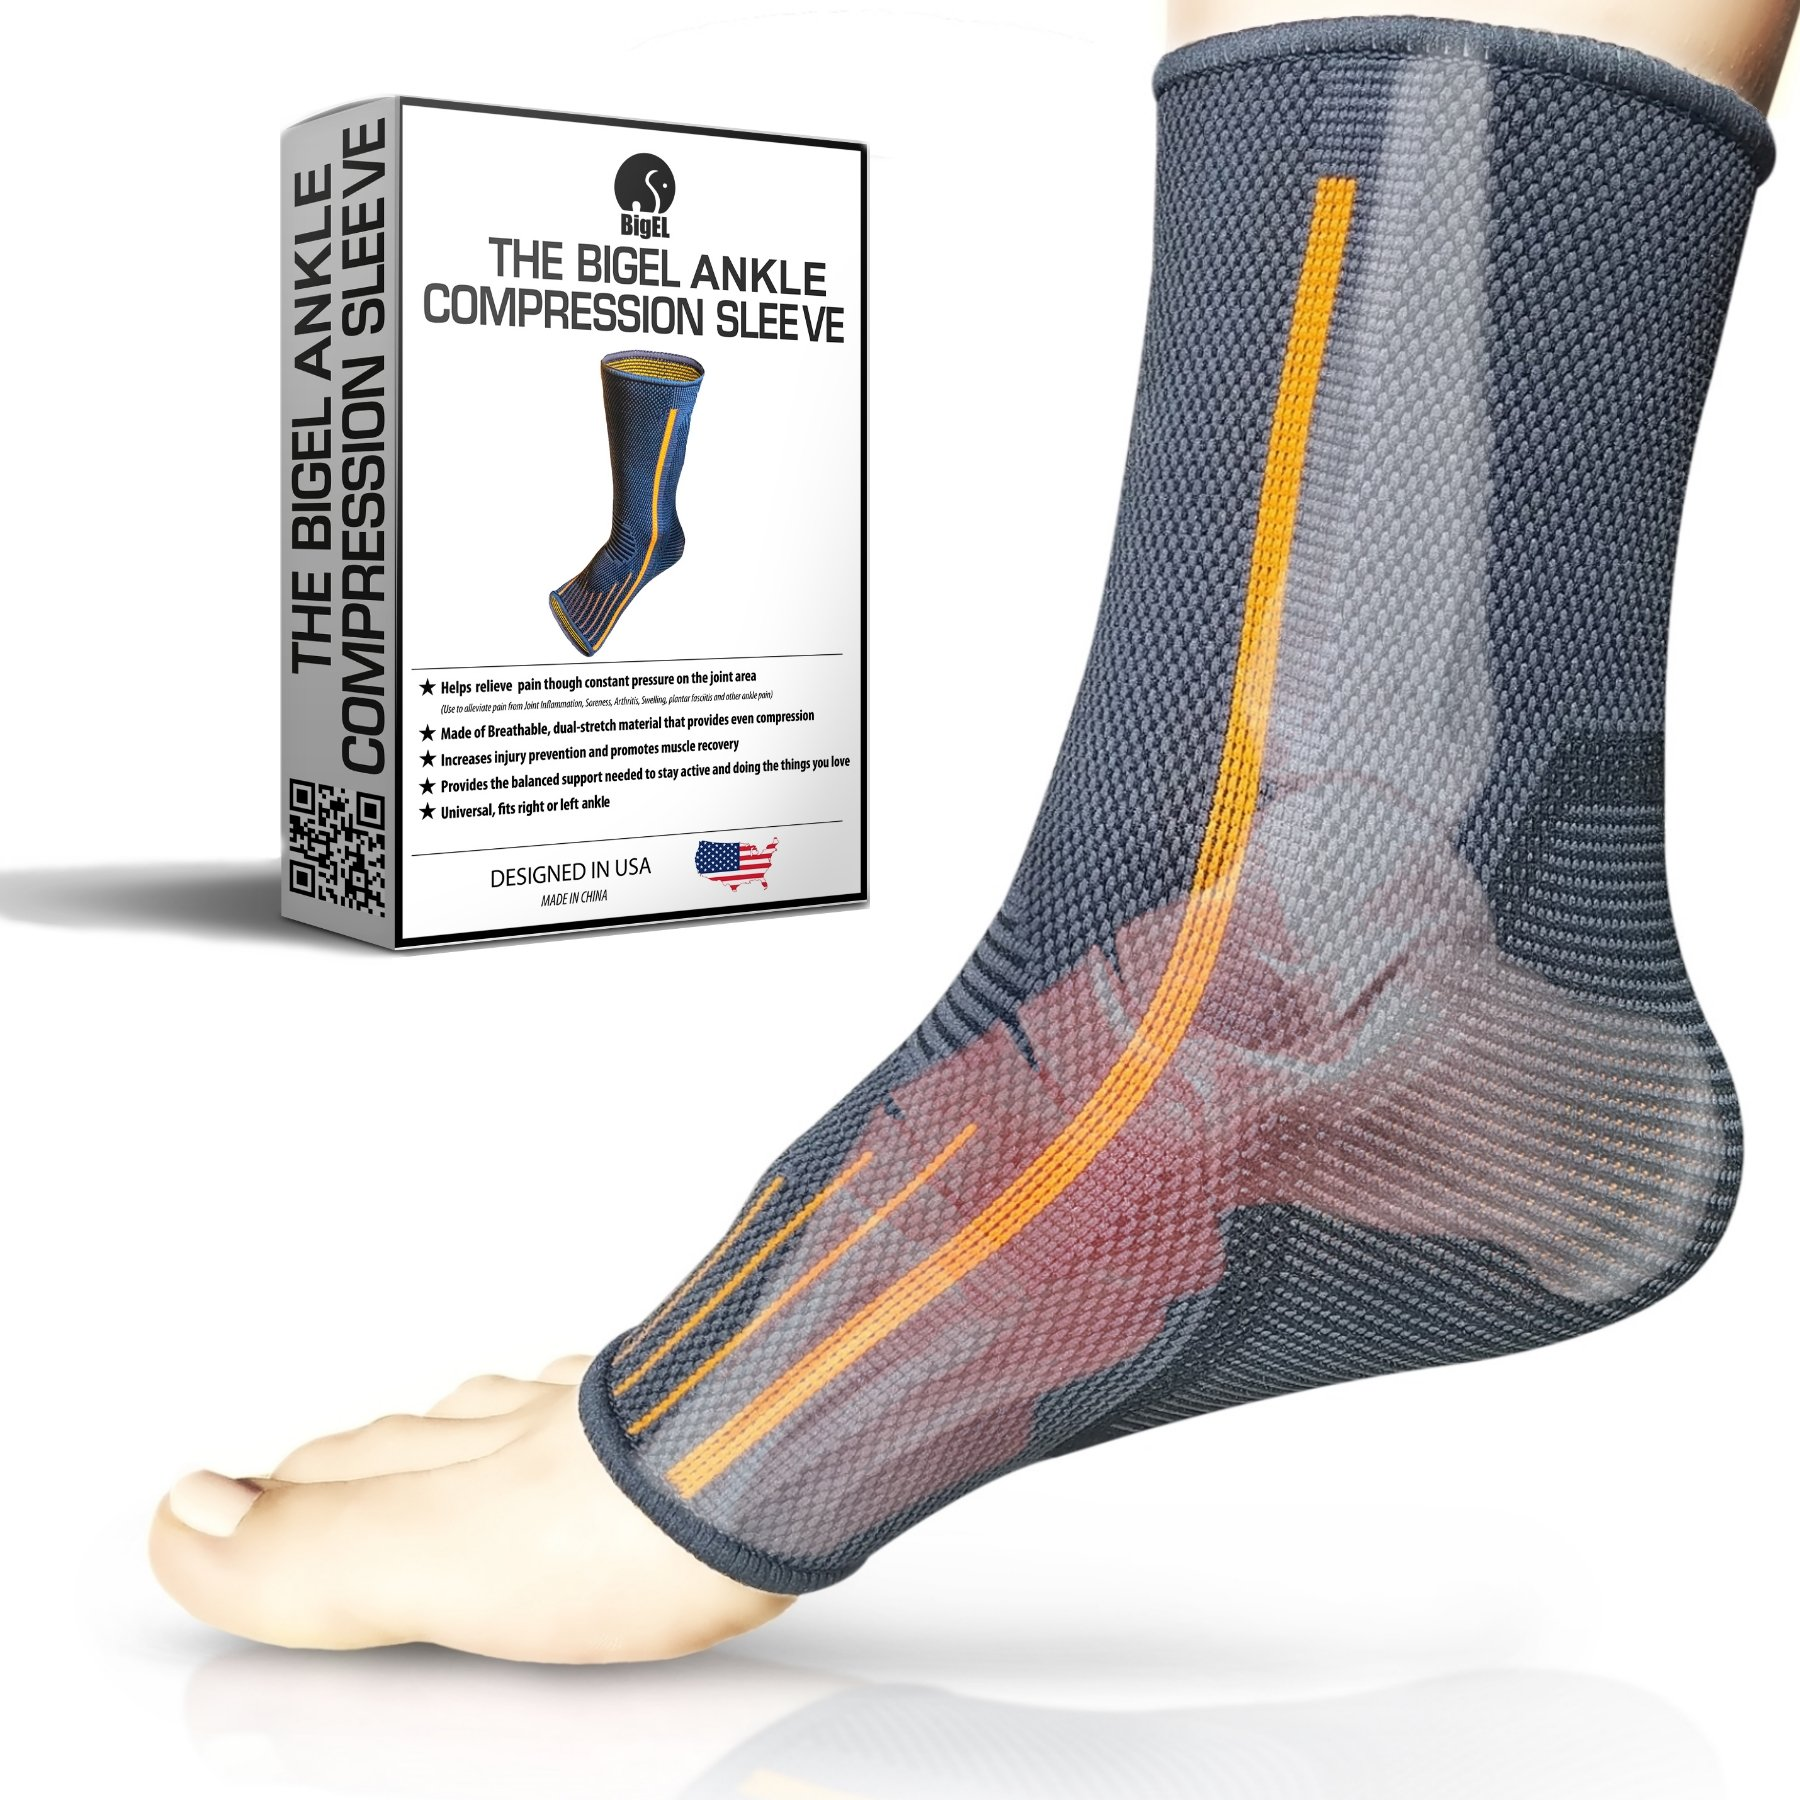 Ankle Brace Compression Sleeve | Arch Support | Foot Sock for Injury Recovery, Joint Pain, Swelling, Achilles Tendon | Pain Relief from Heel Spurs, Plantar Fasciitis | Breathable | Women & Men - M